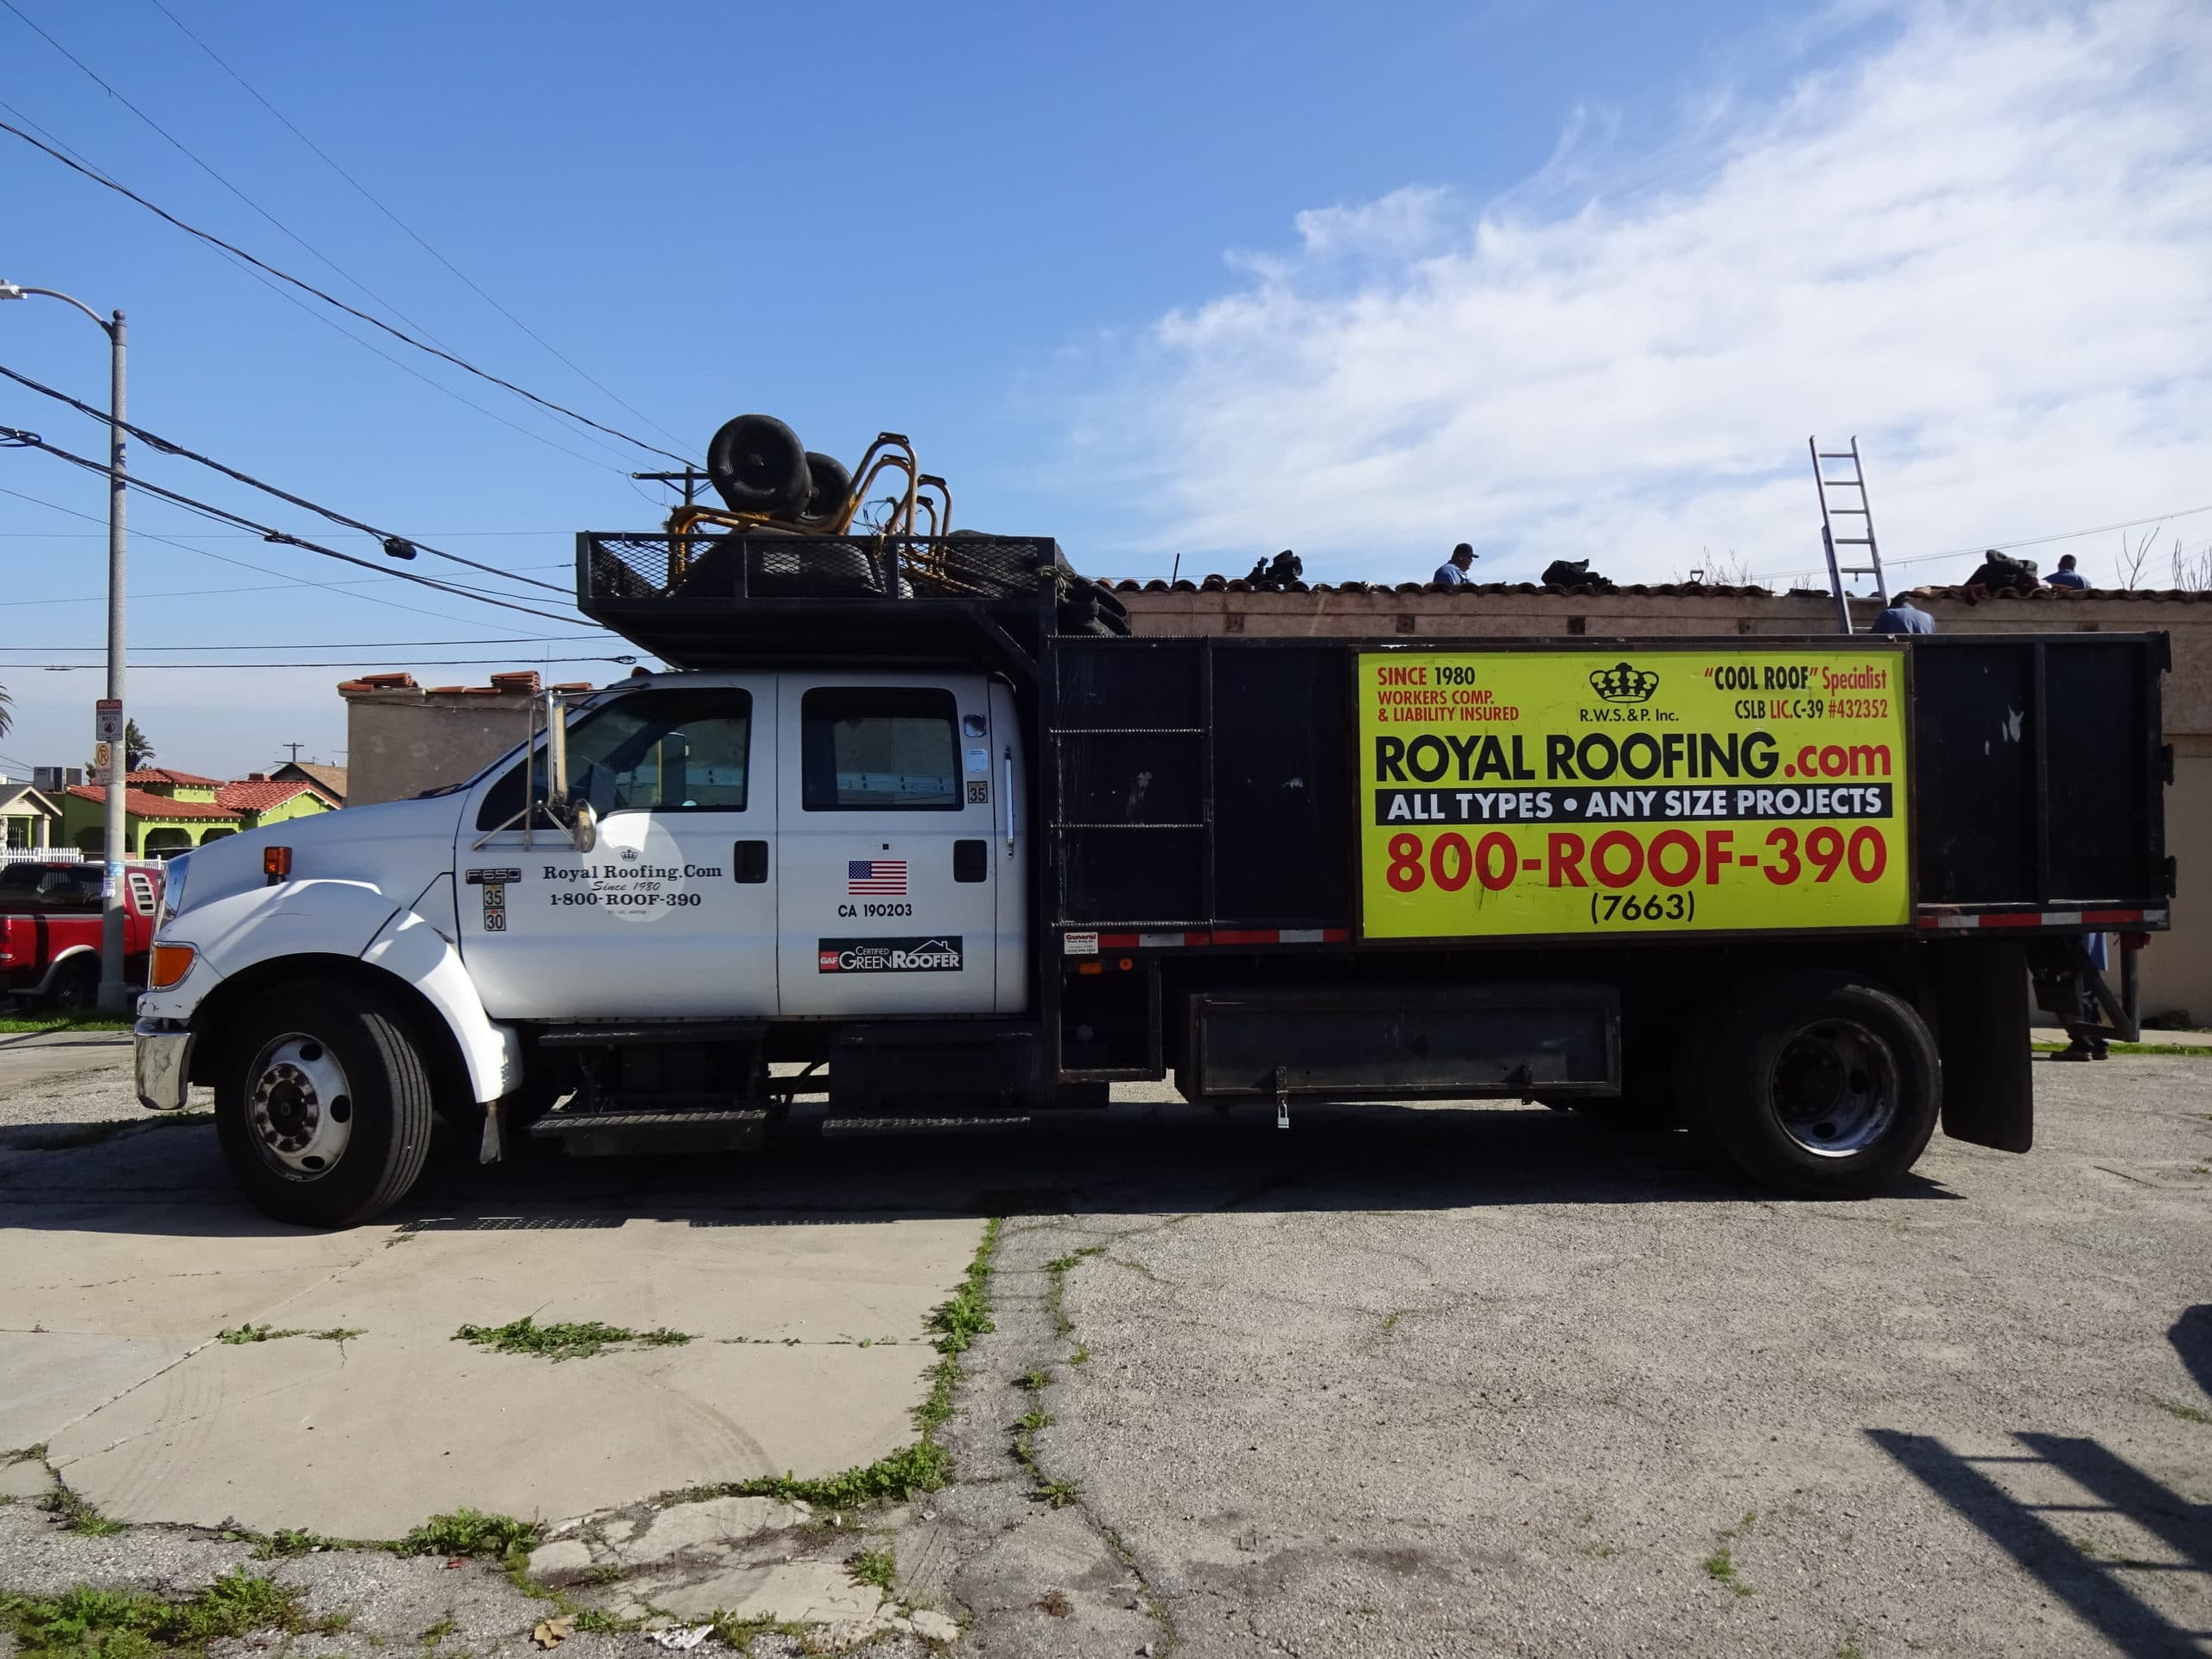 Royal Roofing Crew Truck